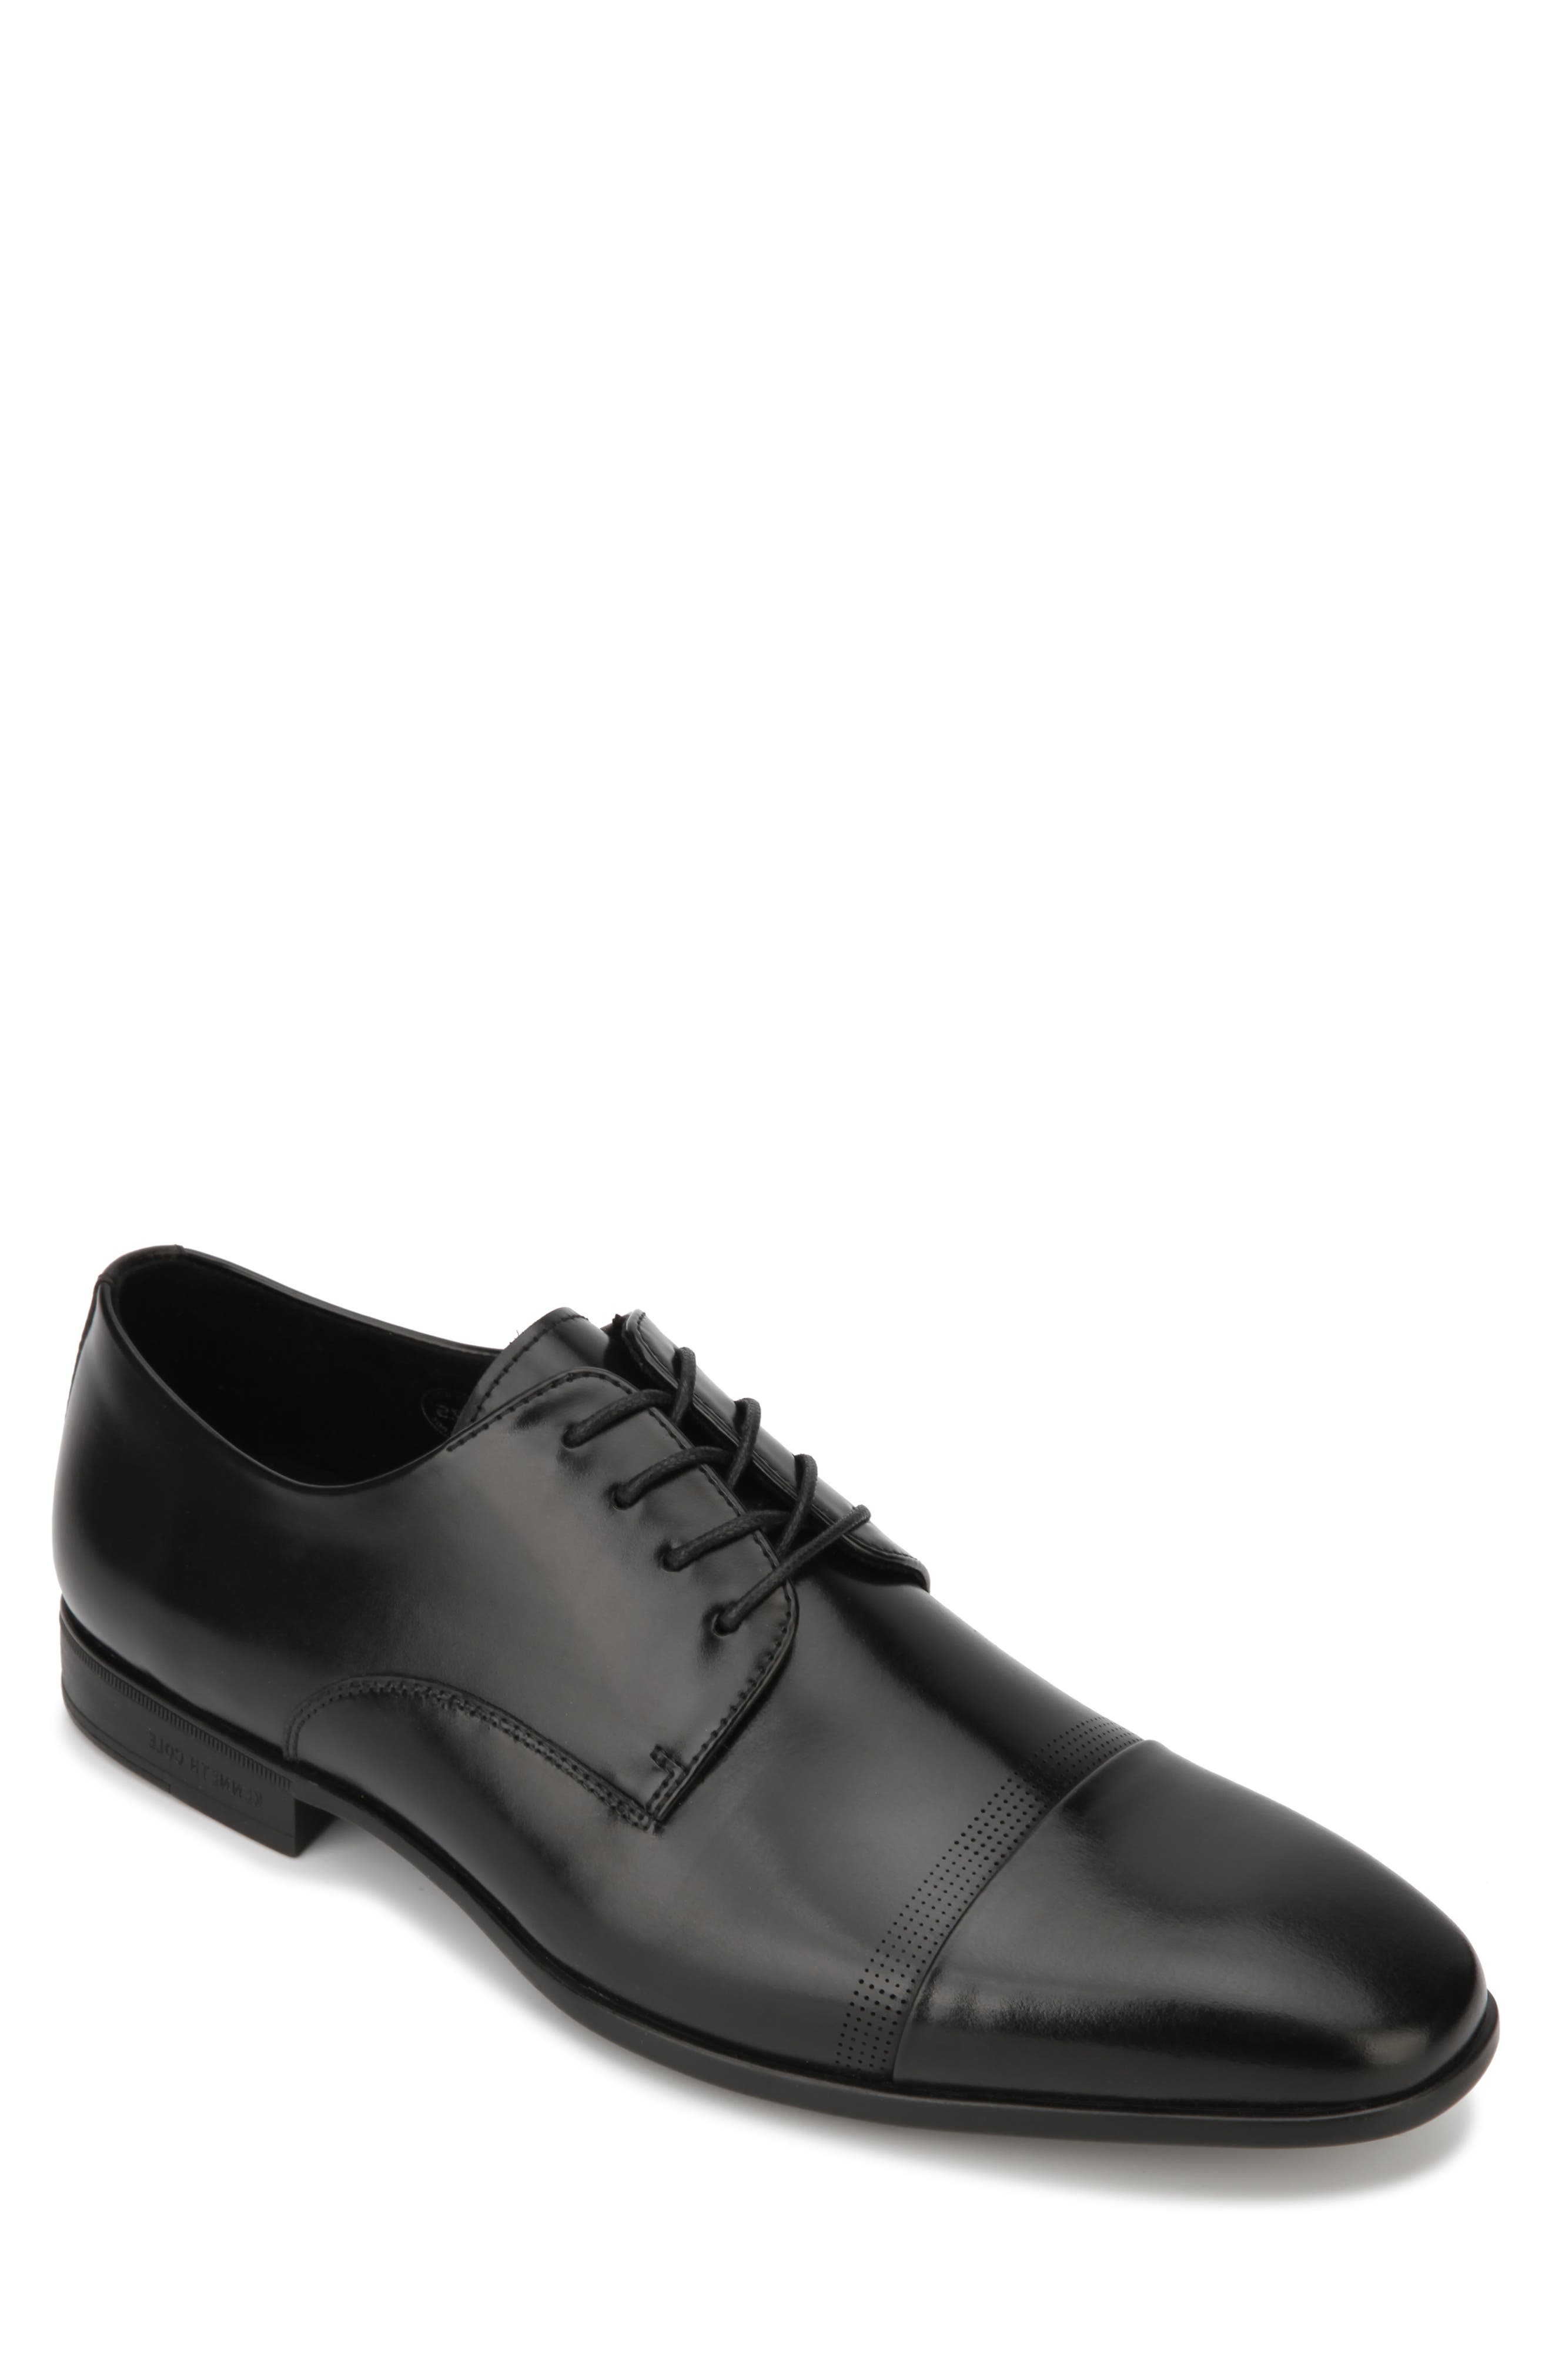 Image of Kenneth Cole New York Regal Cap Toe Leather Derby